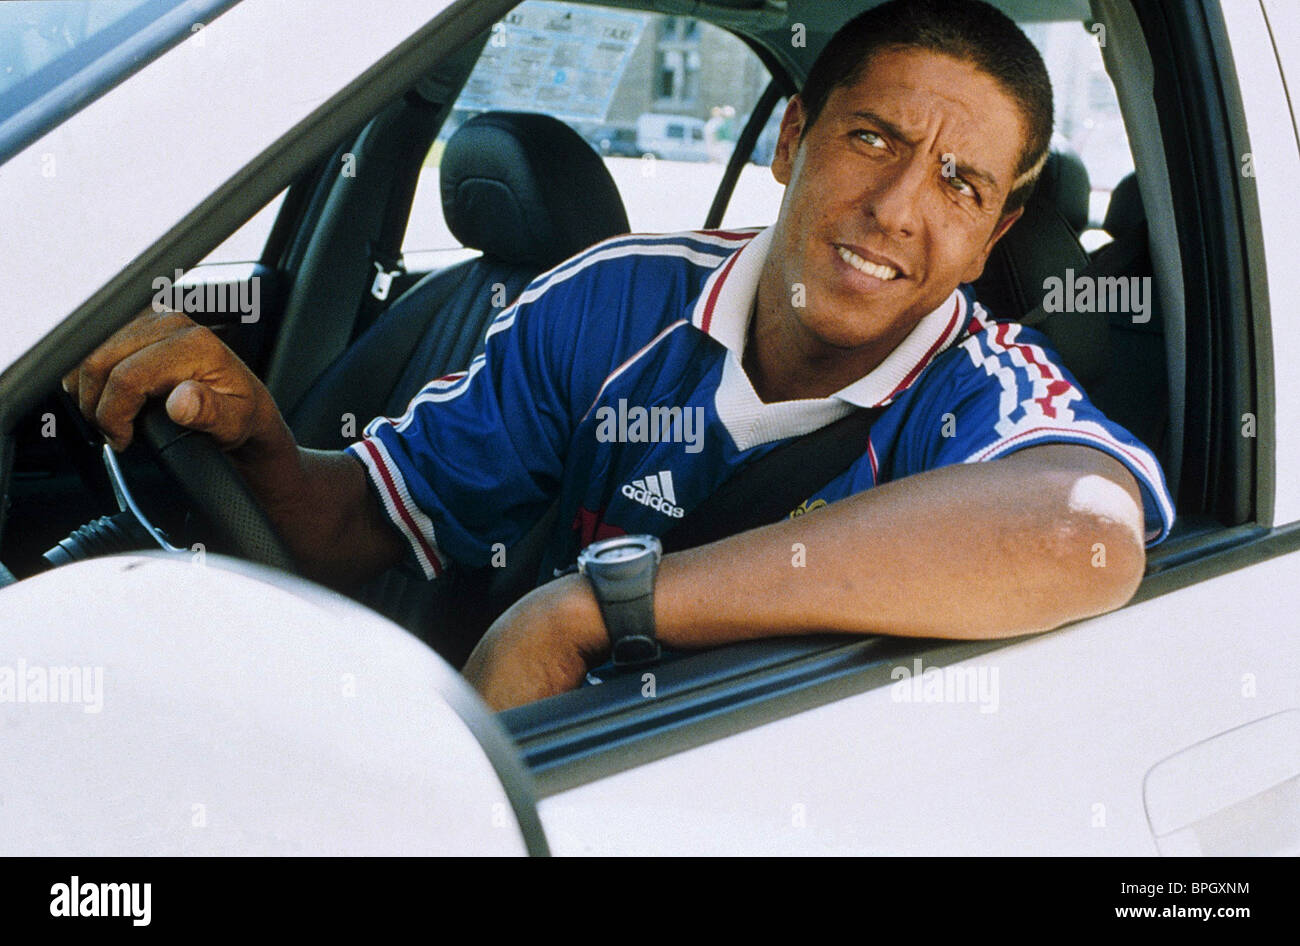 Sami Naceri Taxi 2 2000 Stock Photo Alamy Taxi 2